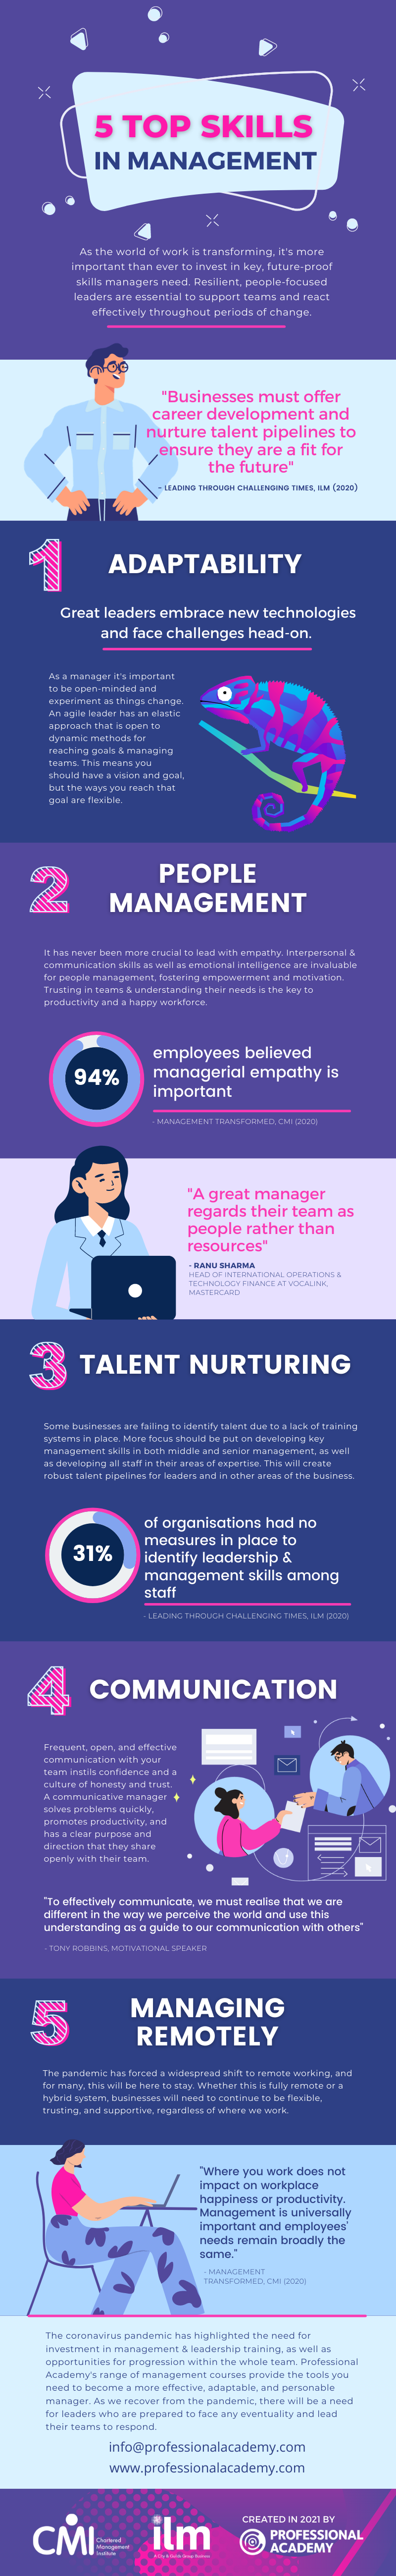 Five essential skills for a successful management career infographic